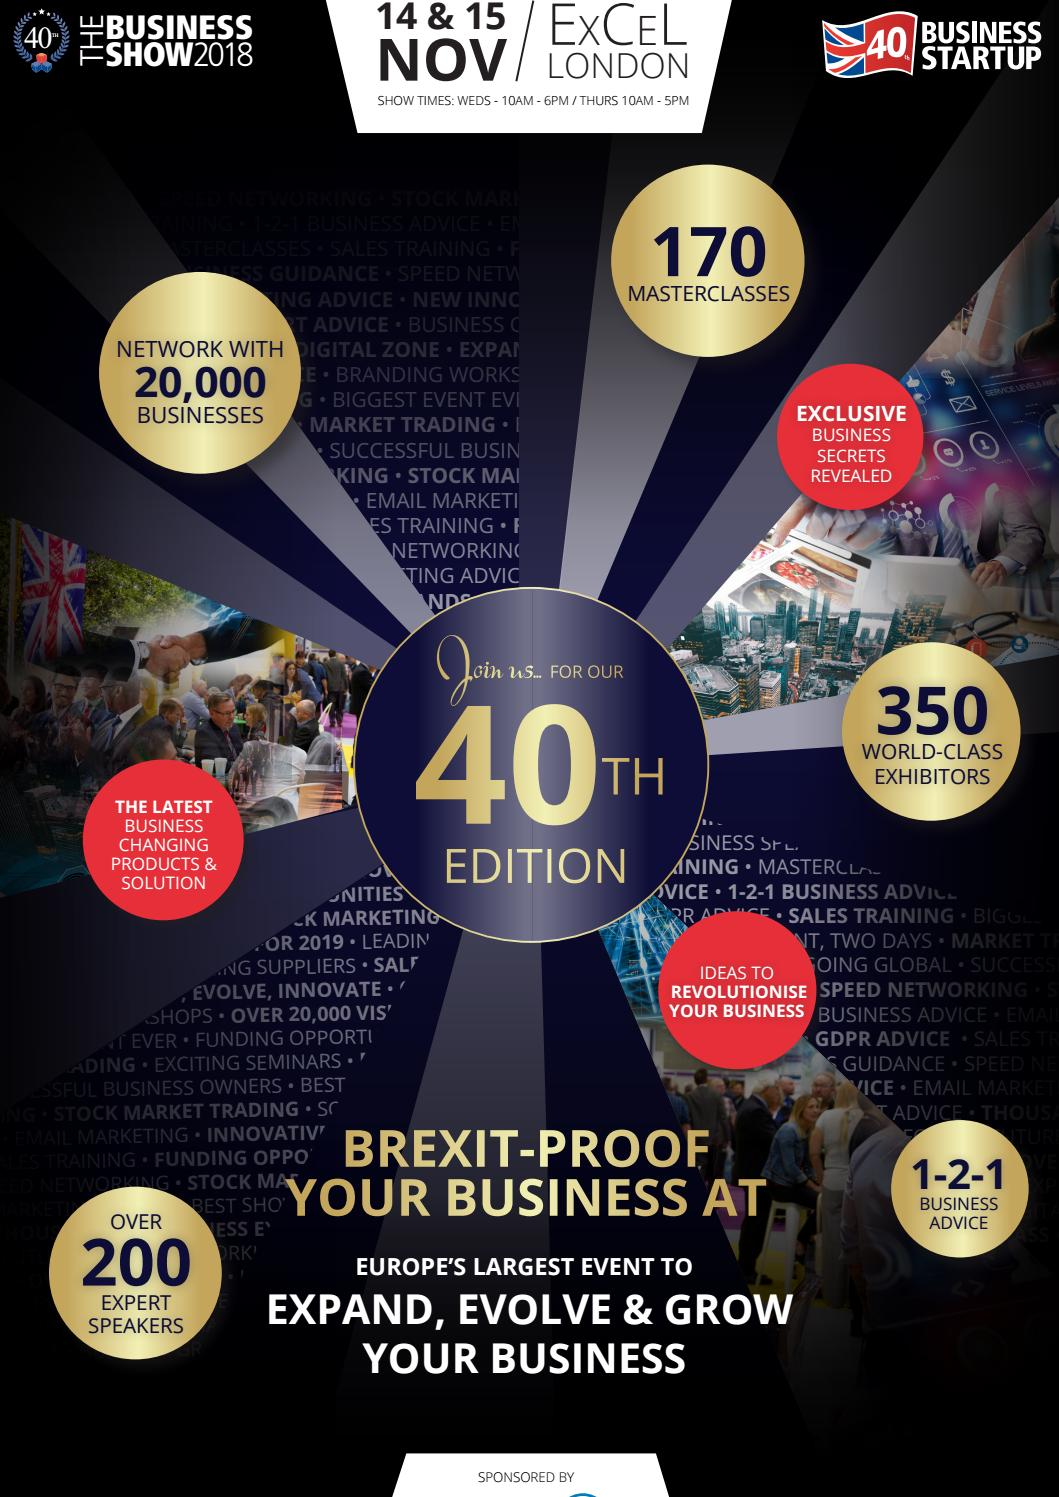 The Business Show 40th Edition Showguide November 2018 by